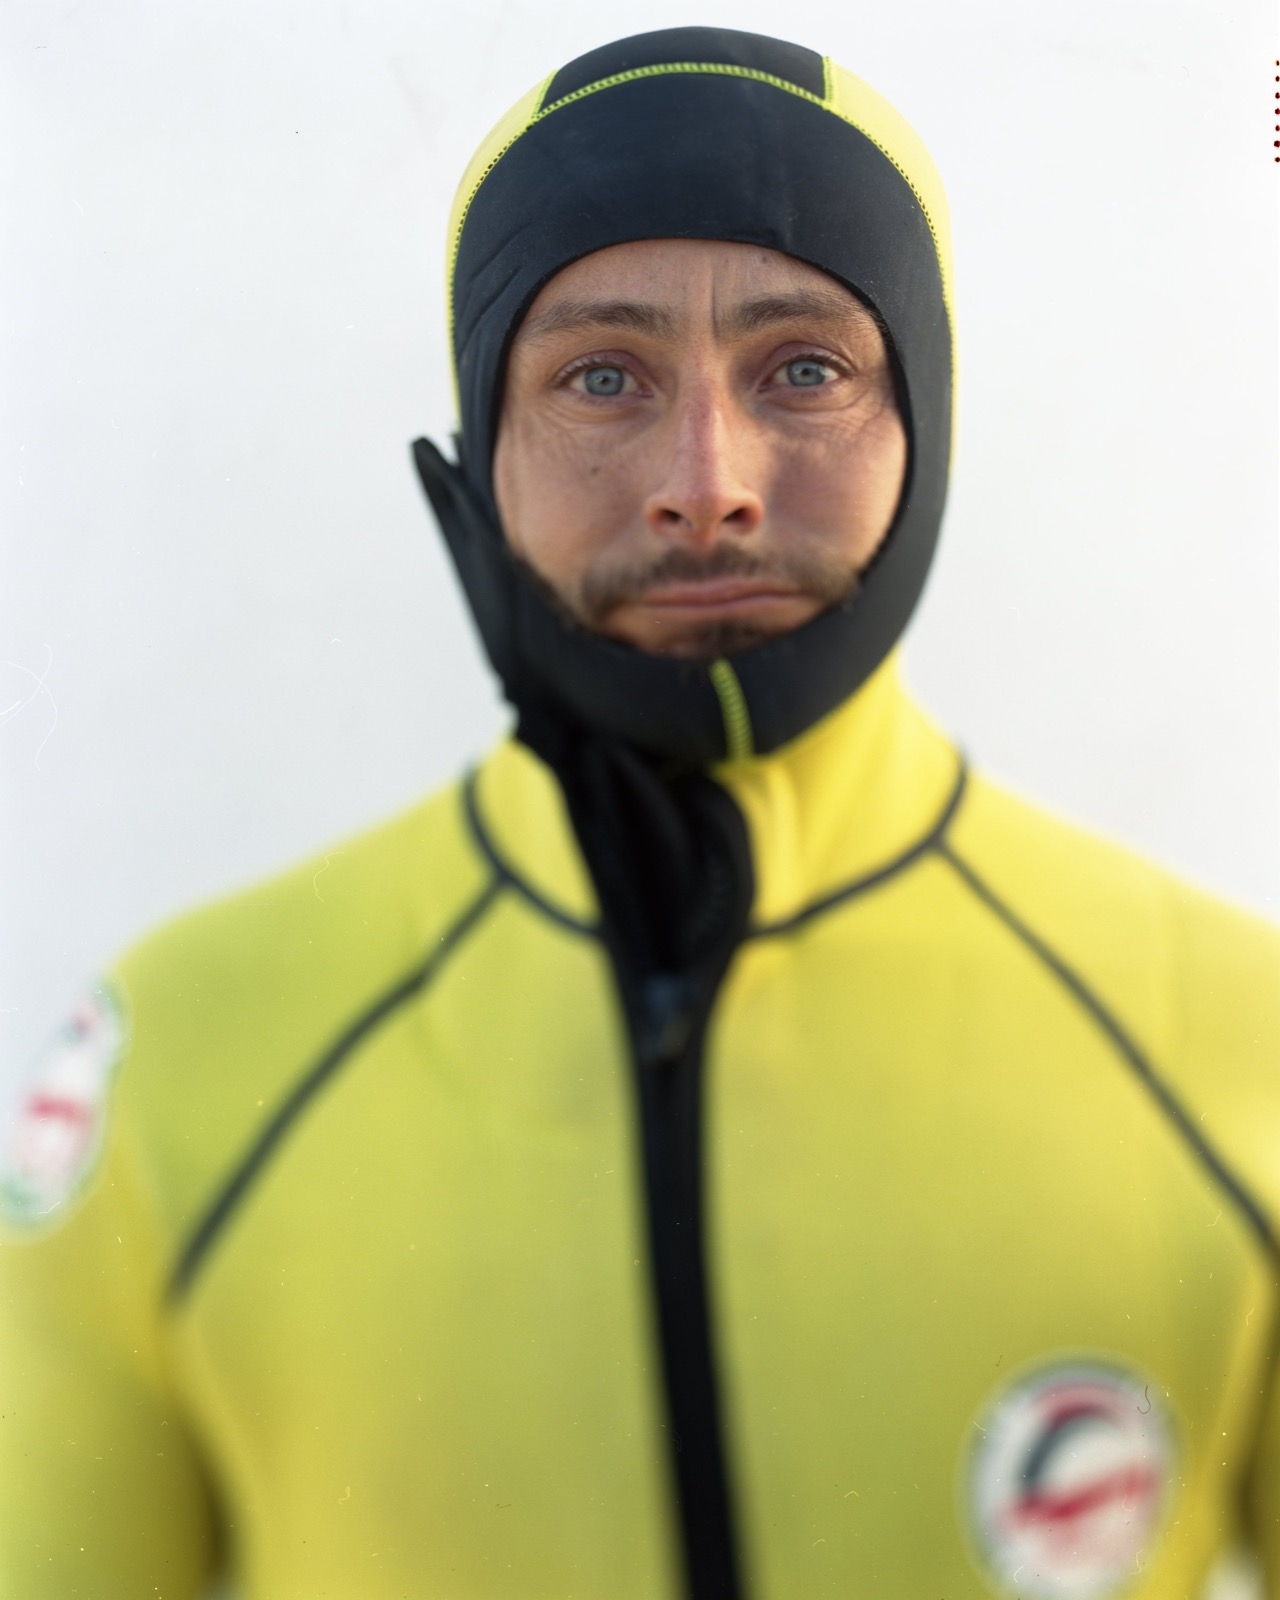 Eugenio Mantero Bueno, firefighter from Seville, Spain, in a wet suit. He was one of many volunteers helping refugees as they landed on Lesbos.